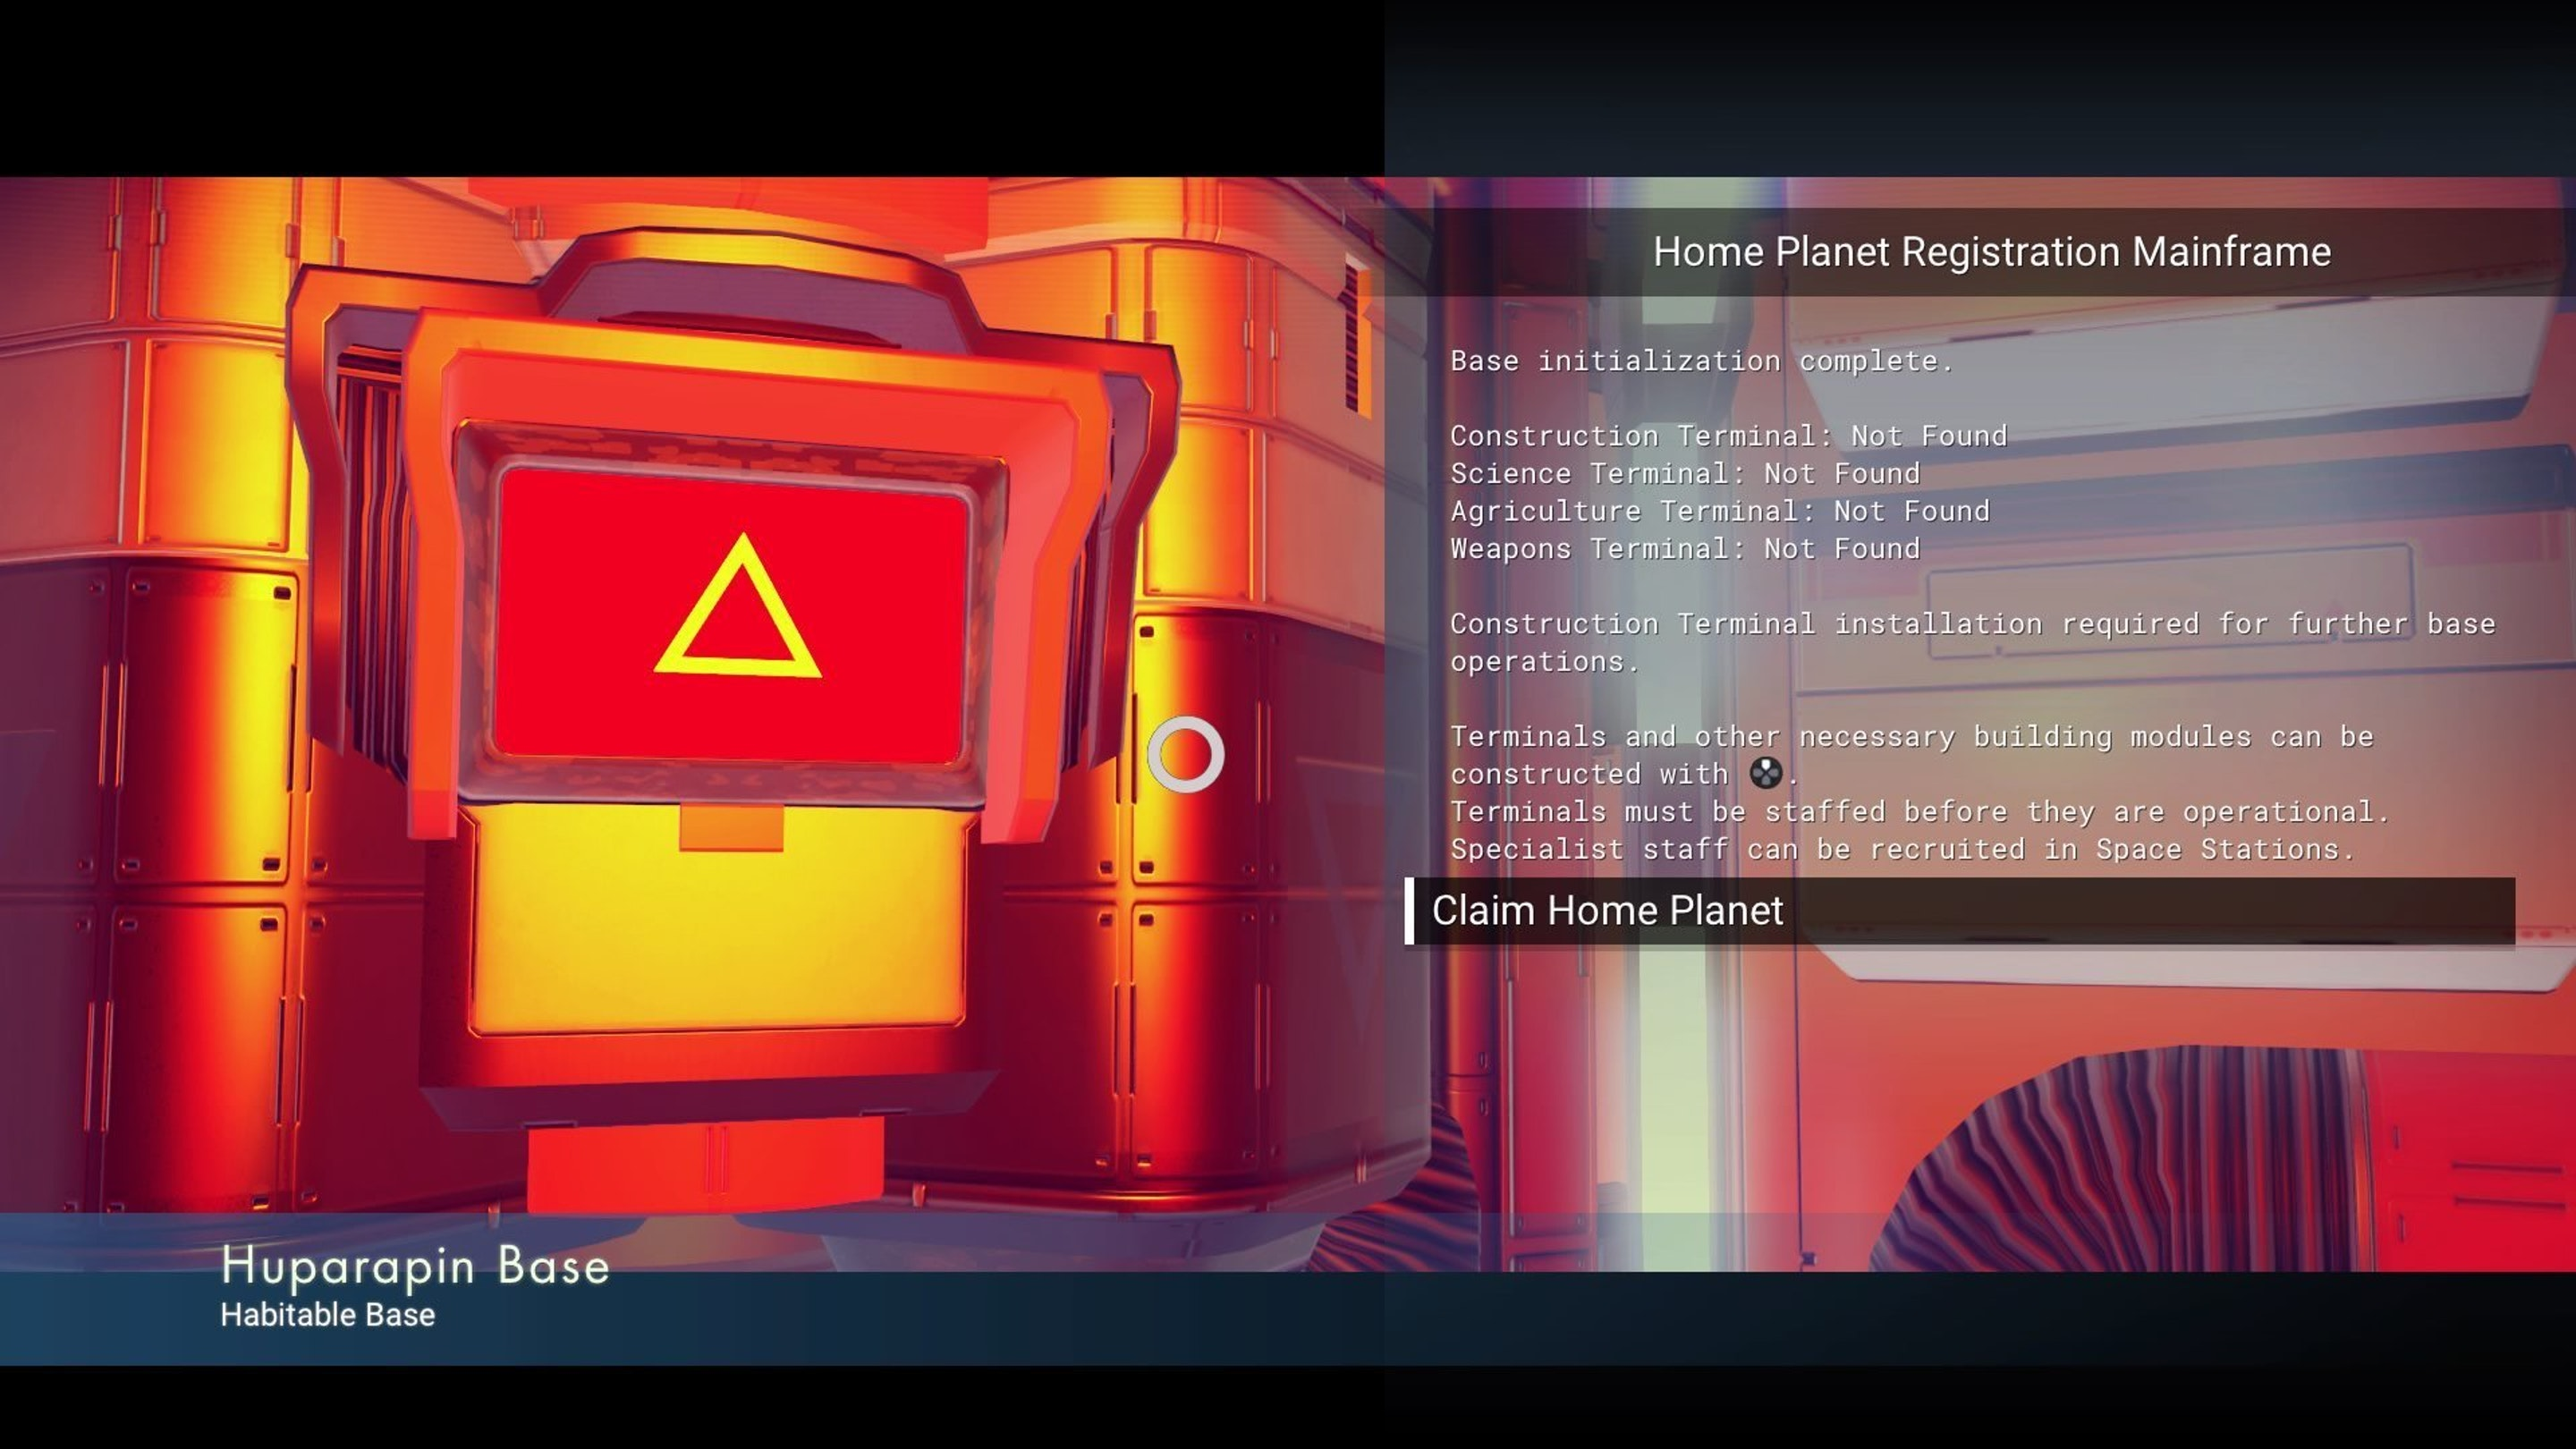 Start out by claiming a home planet